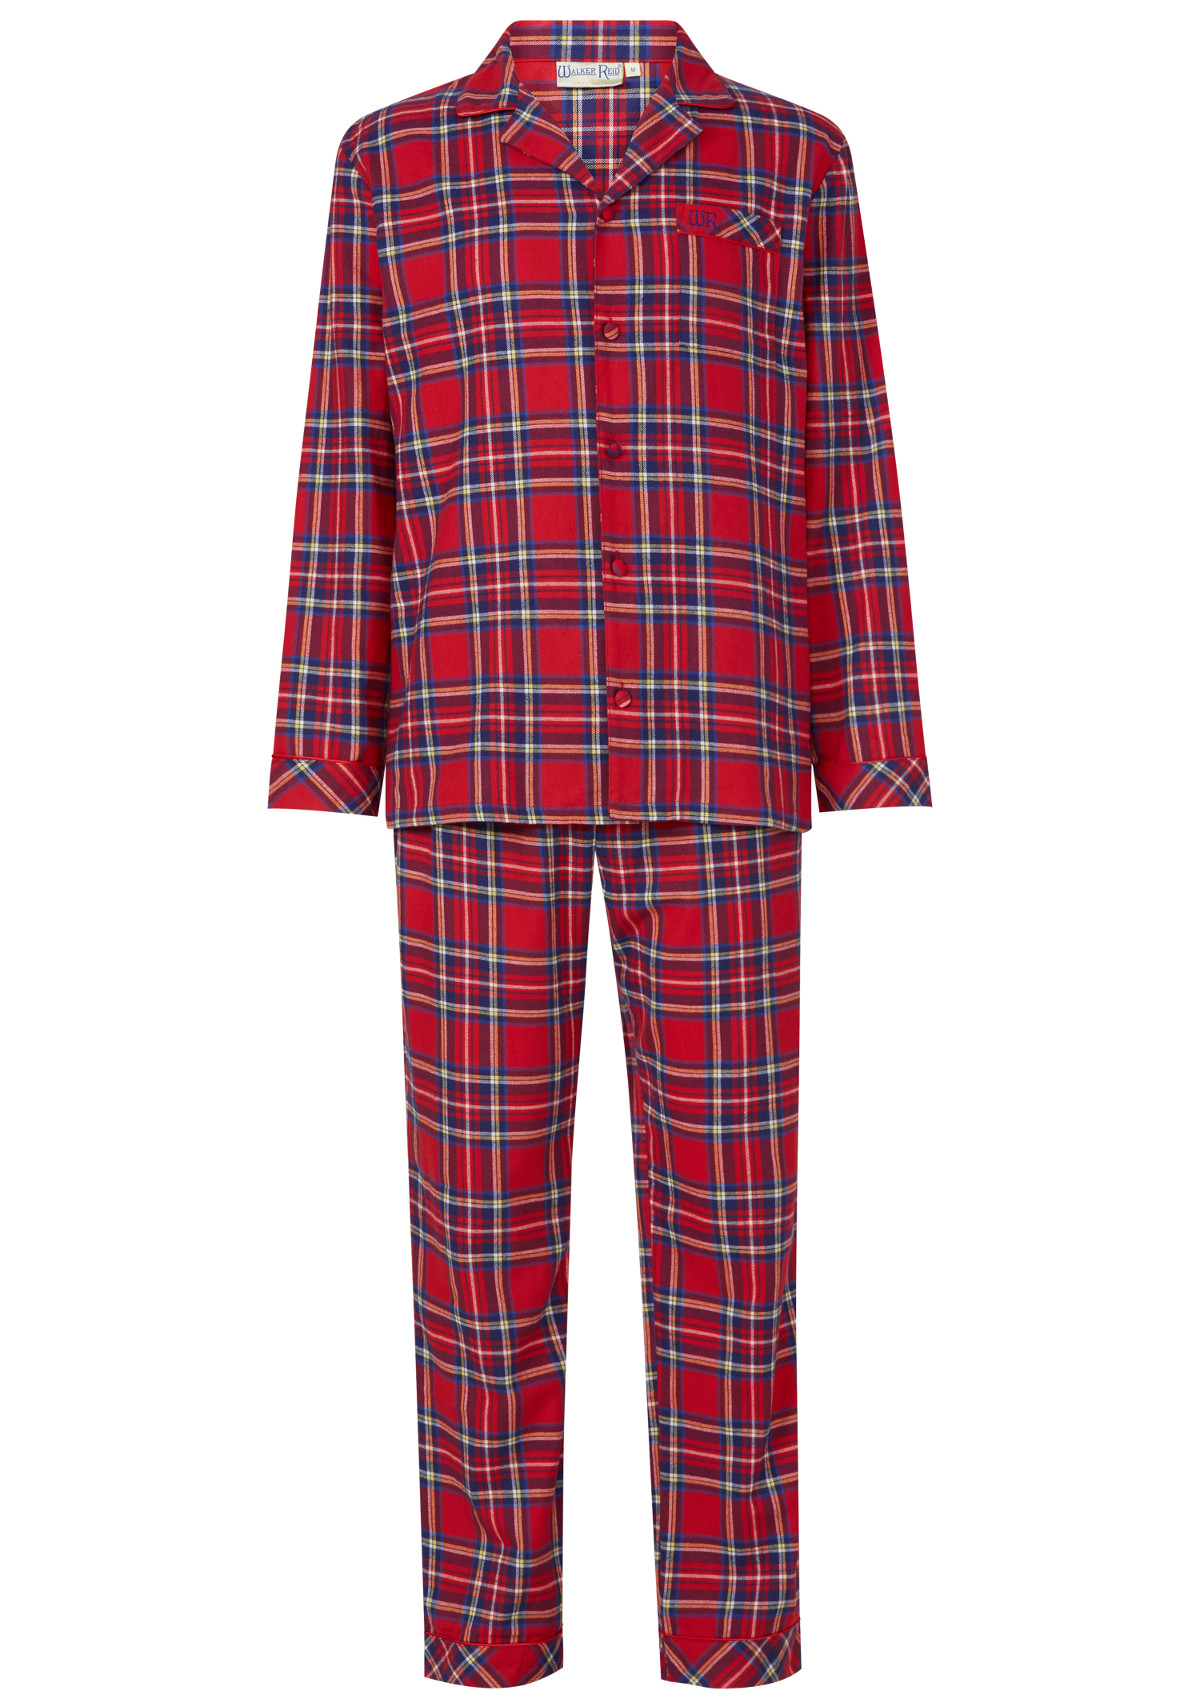 walker reid hommes cossais pyjama fil teint 100 coton boutonn traditionnel ebay. Black Bedroom Furniture Sets. Home Design Ideas